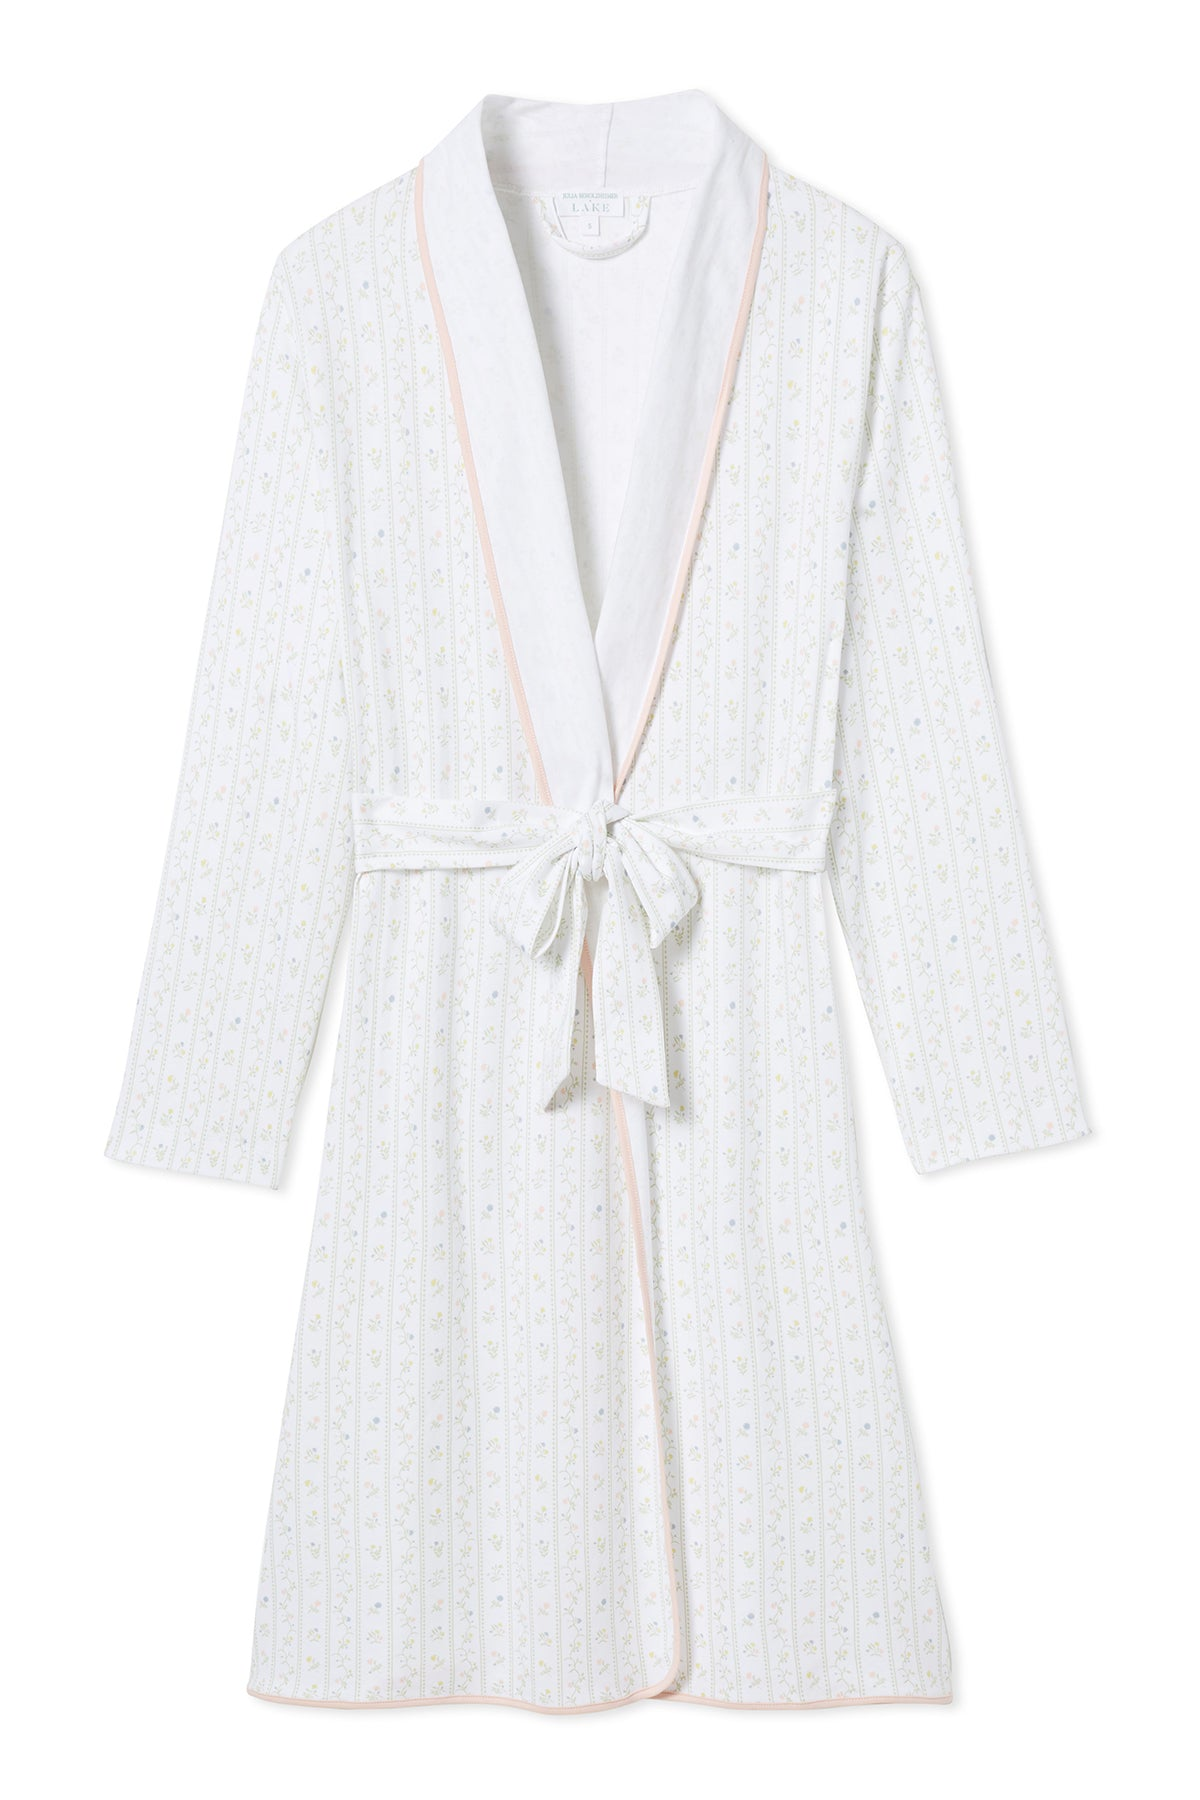 JB x LAKE Pima Robe in Spring Garden